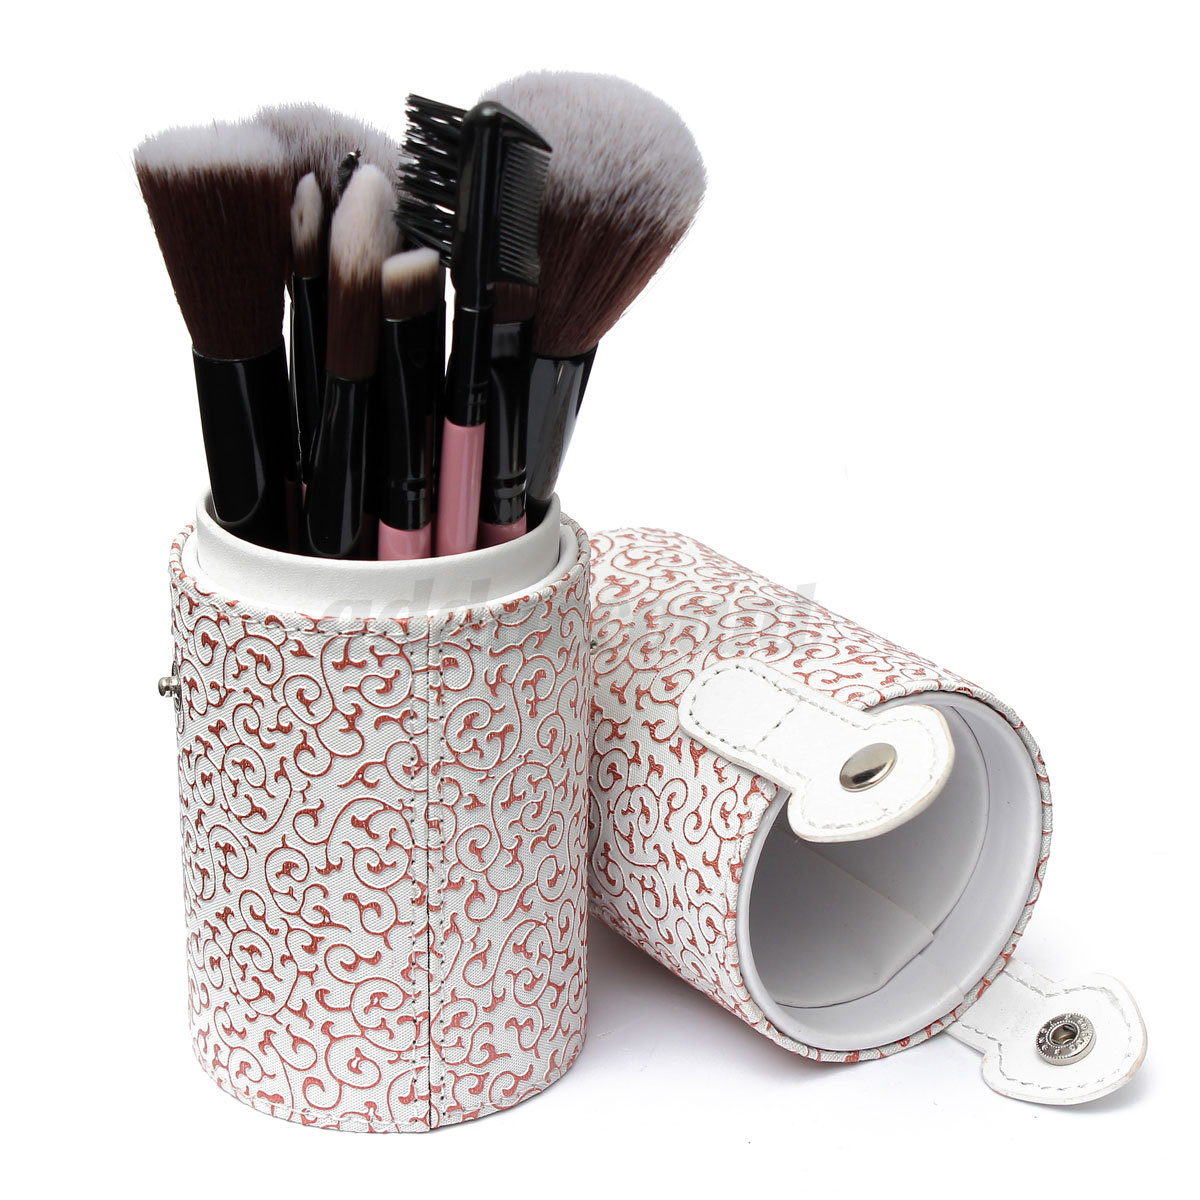 Floral Cosmetic Makeup Brushes Brush Set Tool Kit Leather Cup Holder Case Bag | EBay